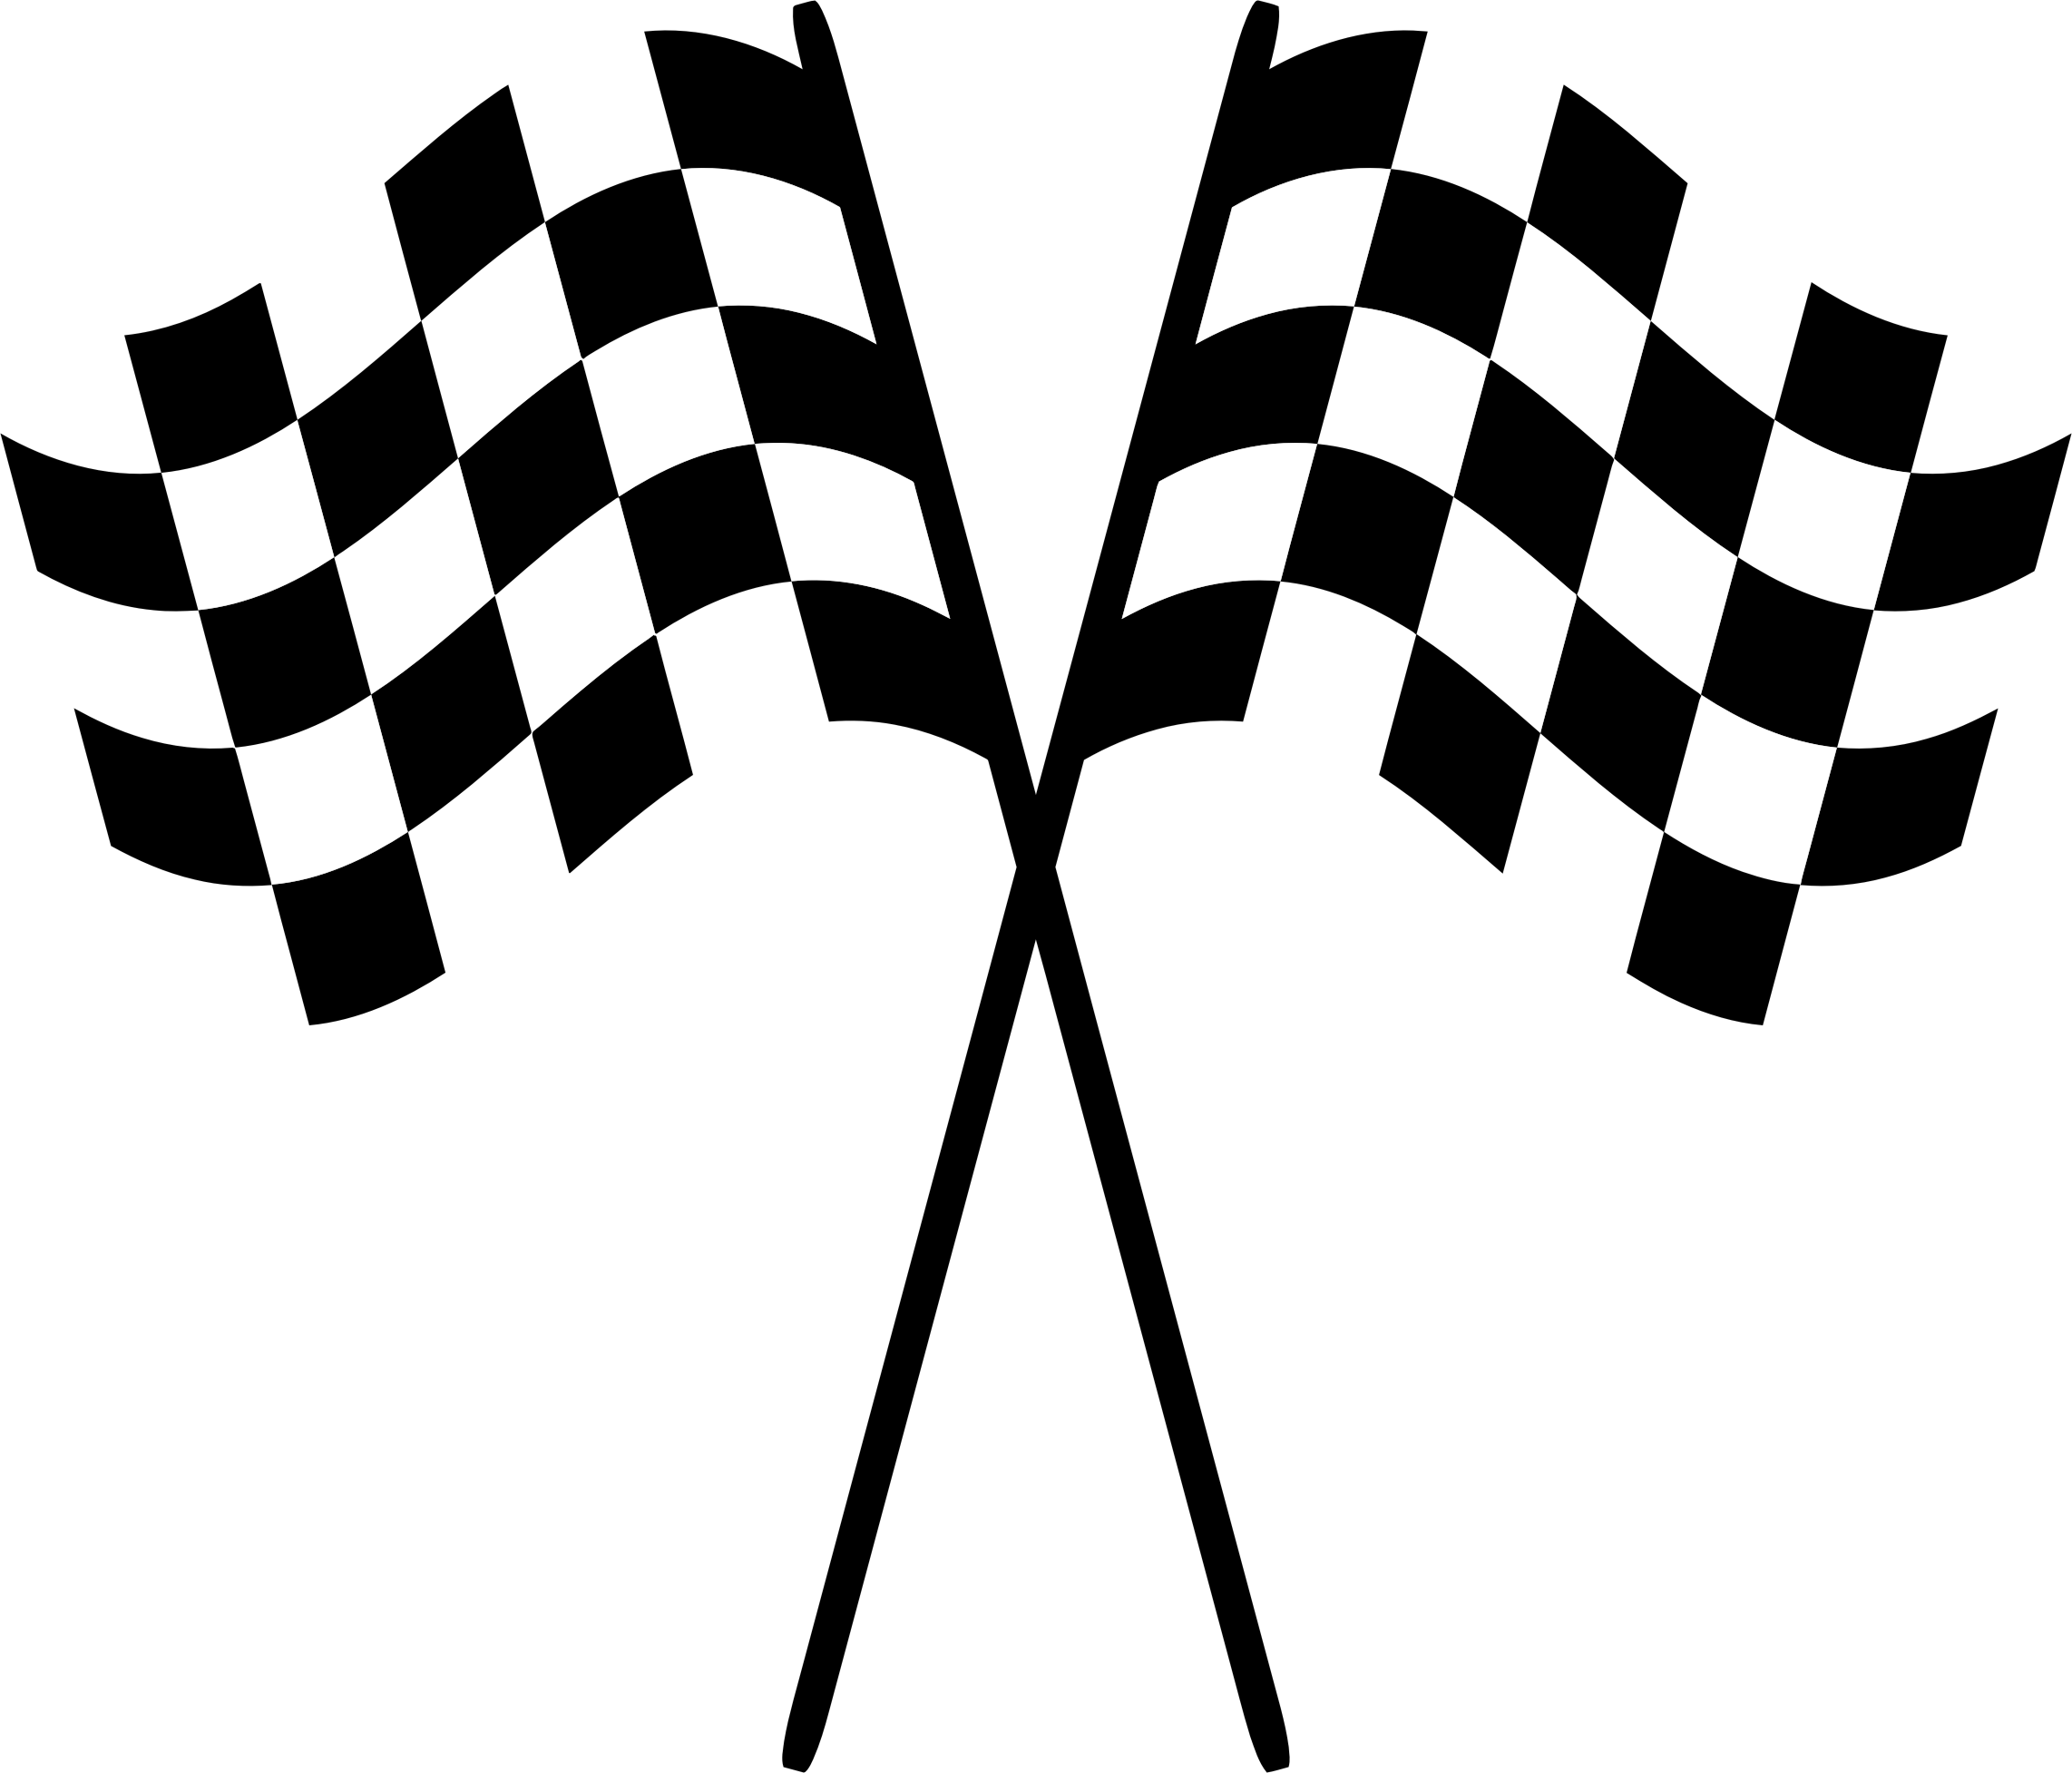 clipart black and white library Checkered flags big image. Racing clipart.